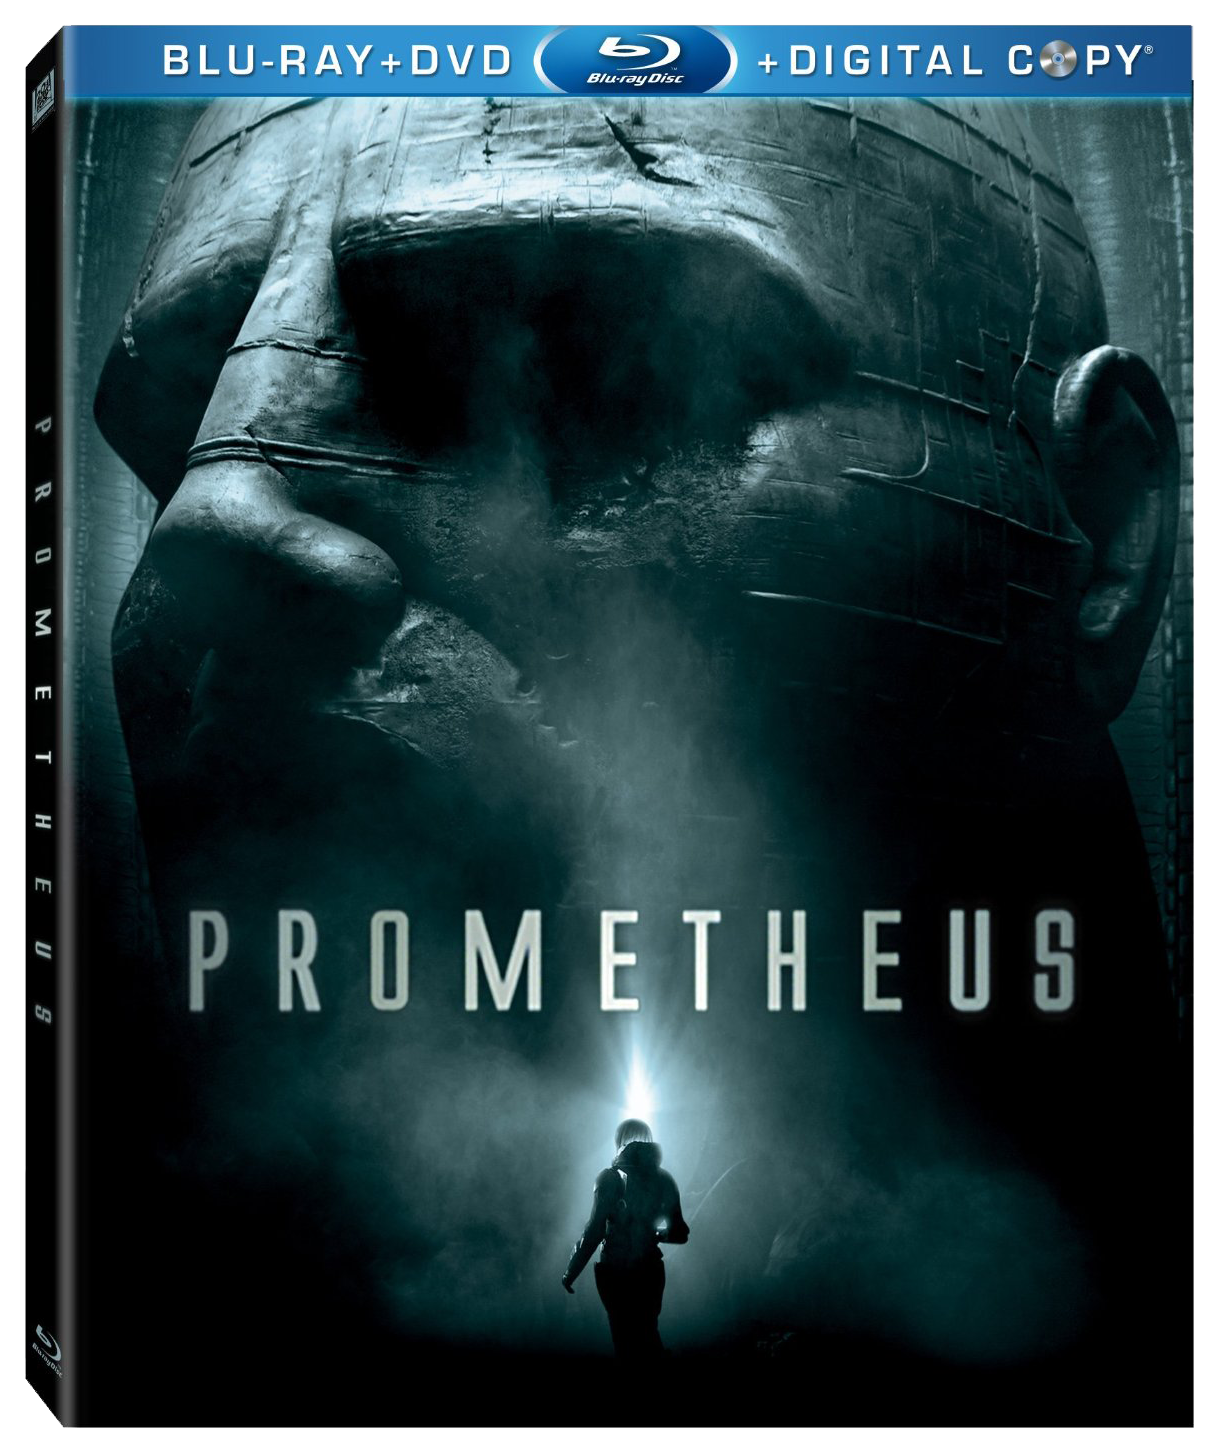 Prometheus blu ray blu ray 3d dvd 20th century fox